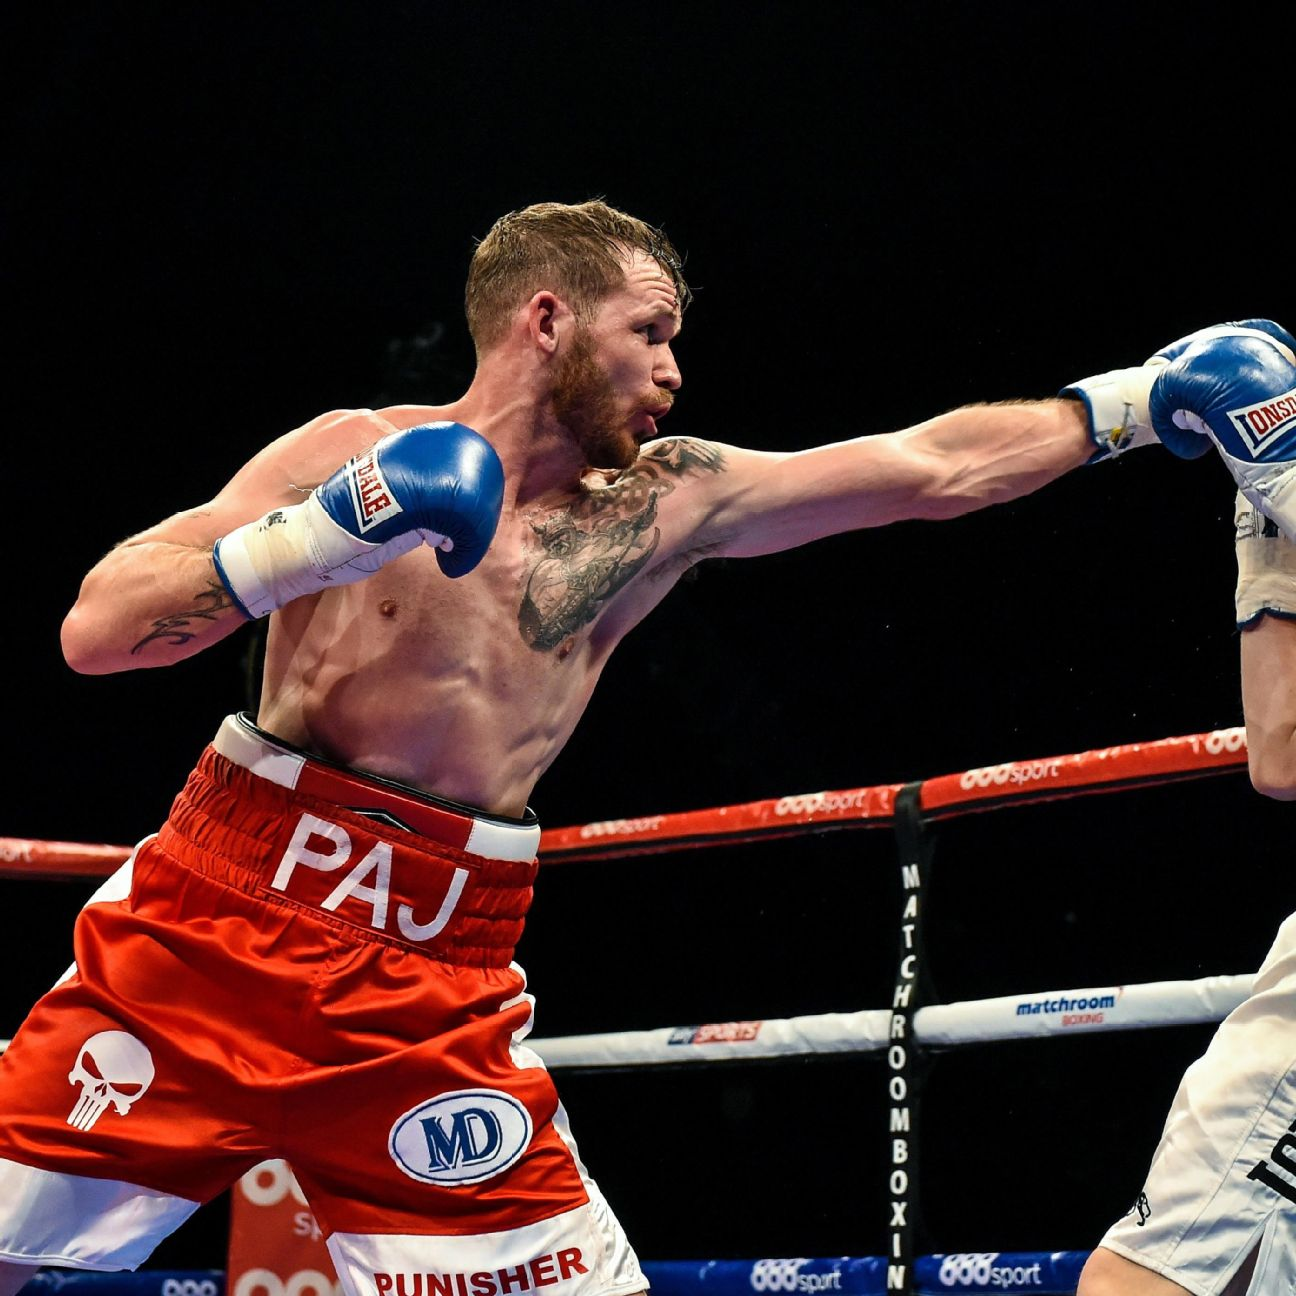 <a class='titles_link' href='view_news.php?link=http://espn.go.com/boxing/boxing/story/_/id/17639589/former-featherweight-world-title-challenger-patrick-hyland-announced-retirement-boxing-saturday&title=Featherweight fighter Patrick Hyland retires</a&img=http://a.espncdn.com/photo/2016/0925/r130928_2_1296x1296_1-1.jpg'>Featherweight fighter Patrick Hyland retires</a</a>